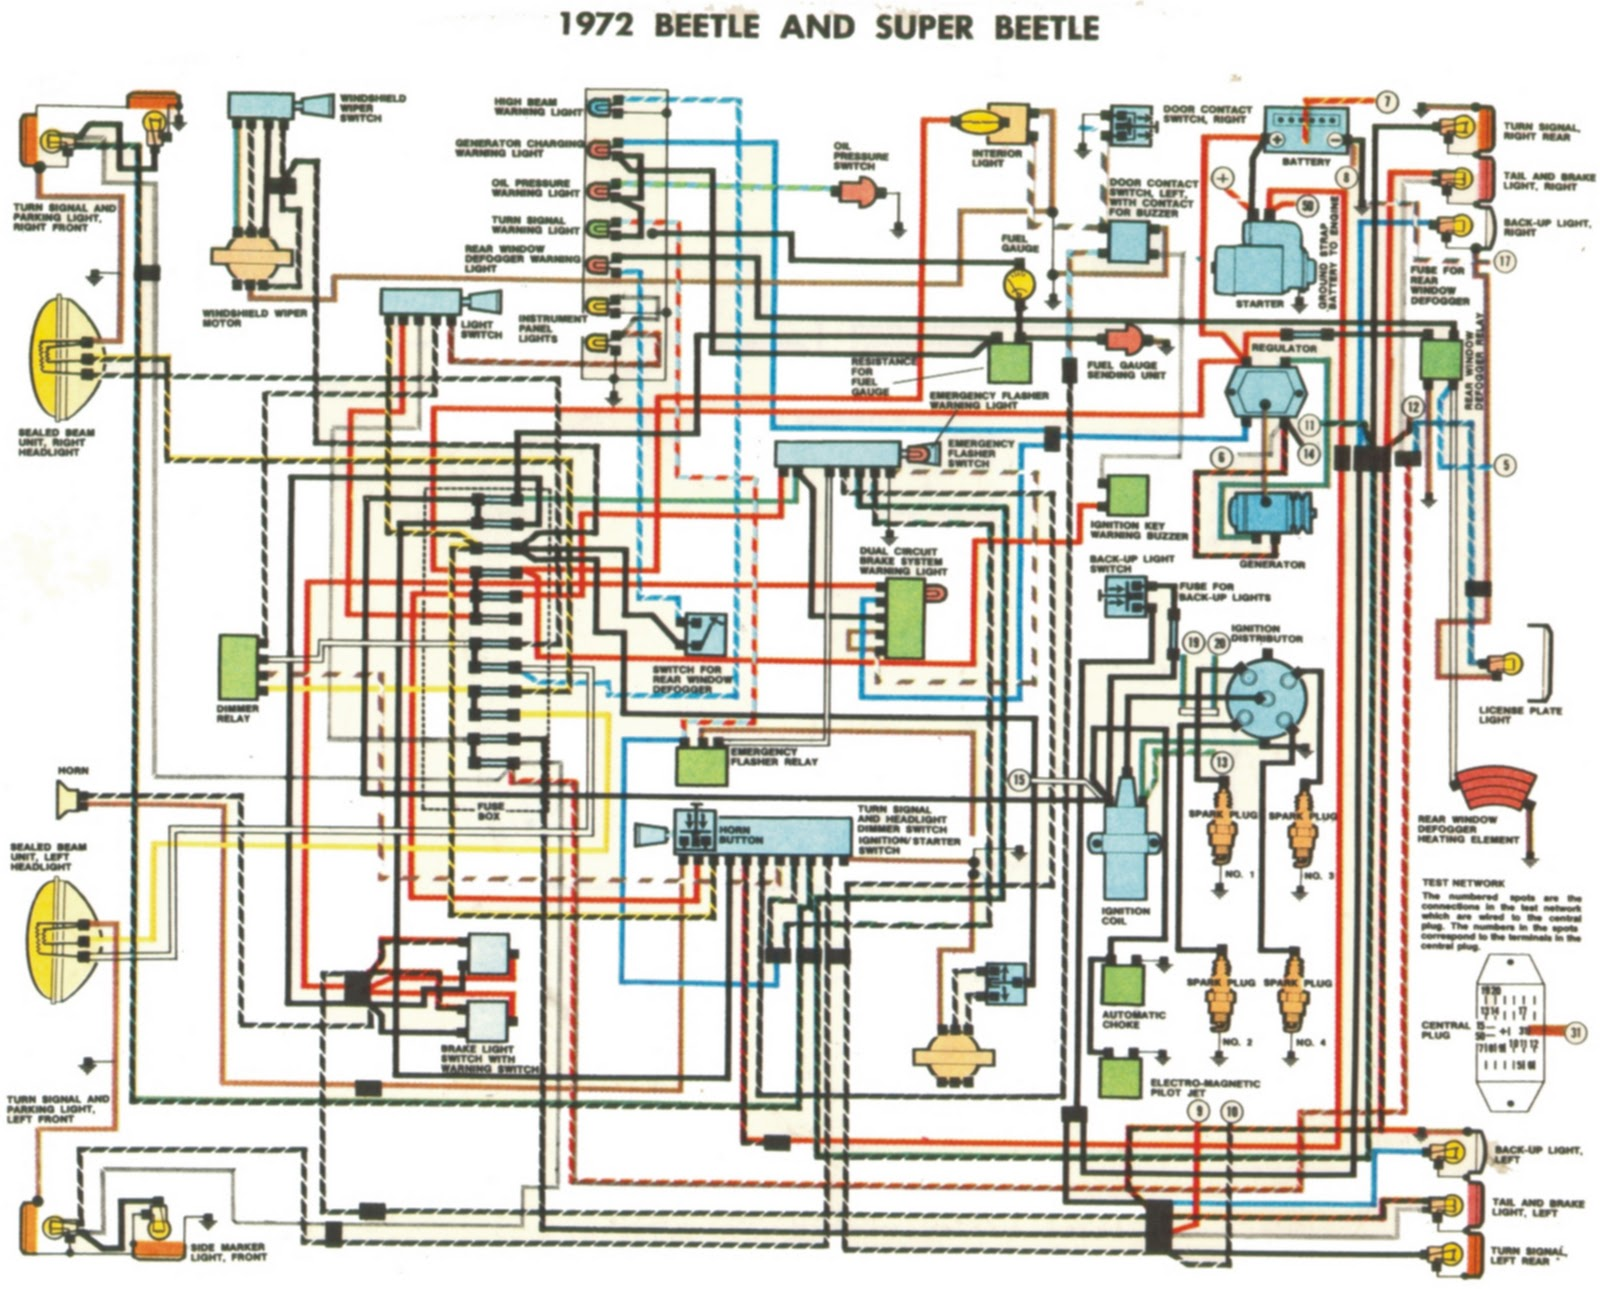 1972 beetle and super beetle wiring diagrams 2001 vw beetle wiring diagram 1964 vw beetle wiring diagram new beetle wiring diagram at bayanpartner.co